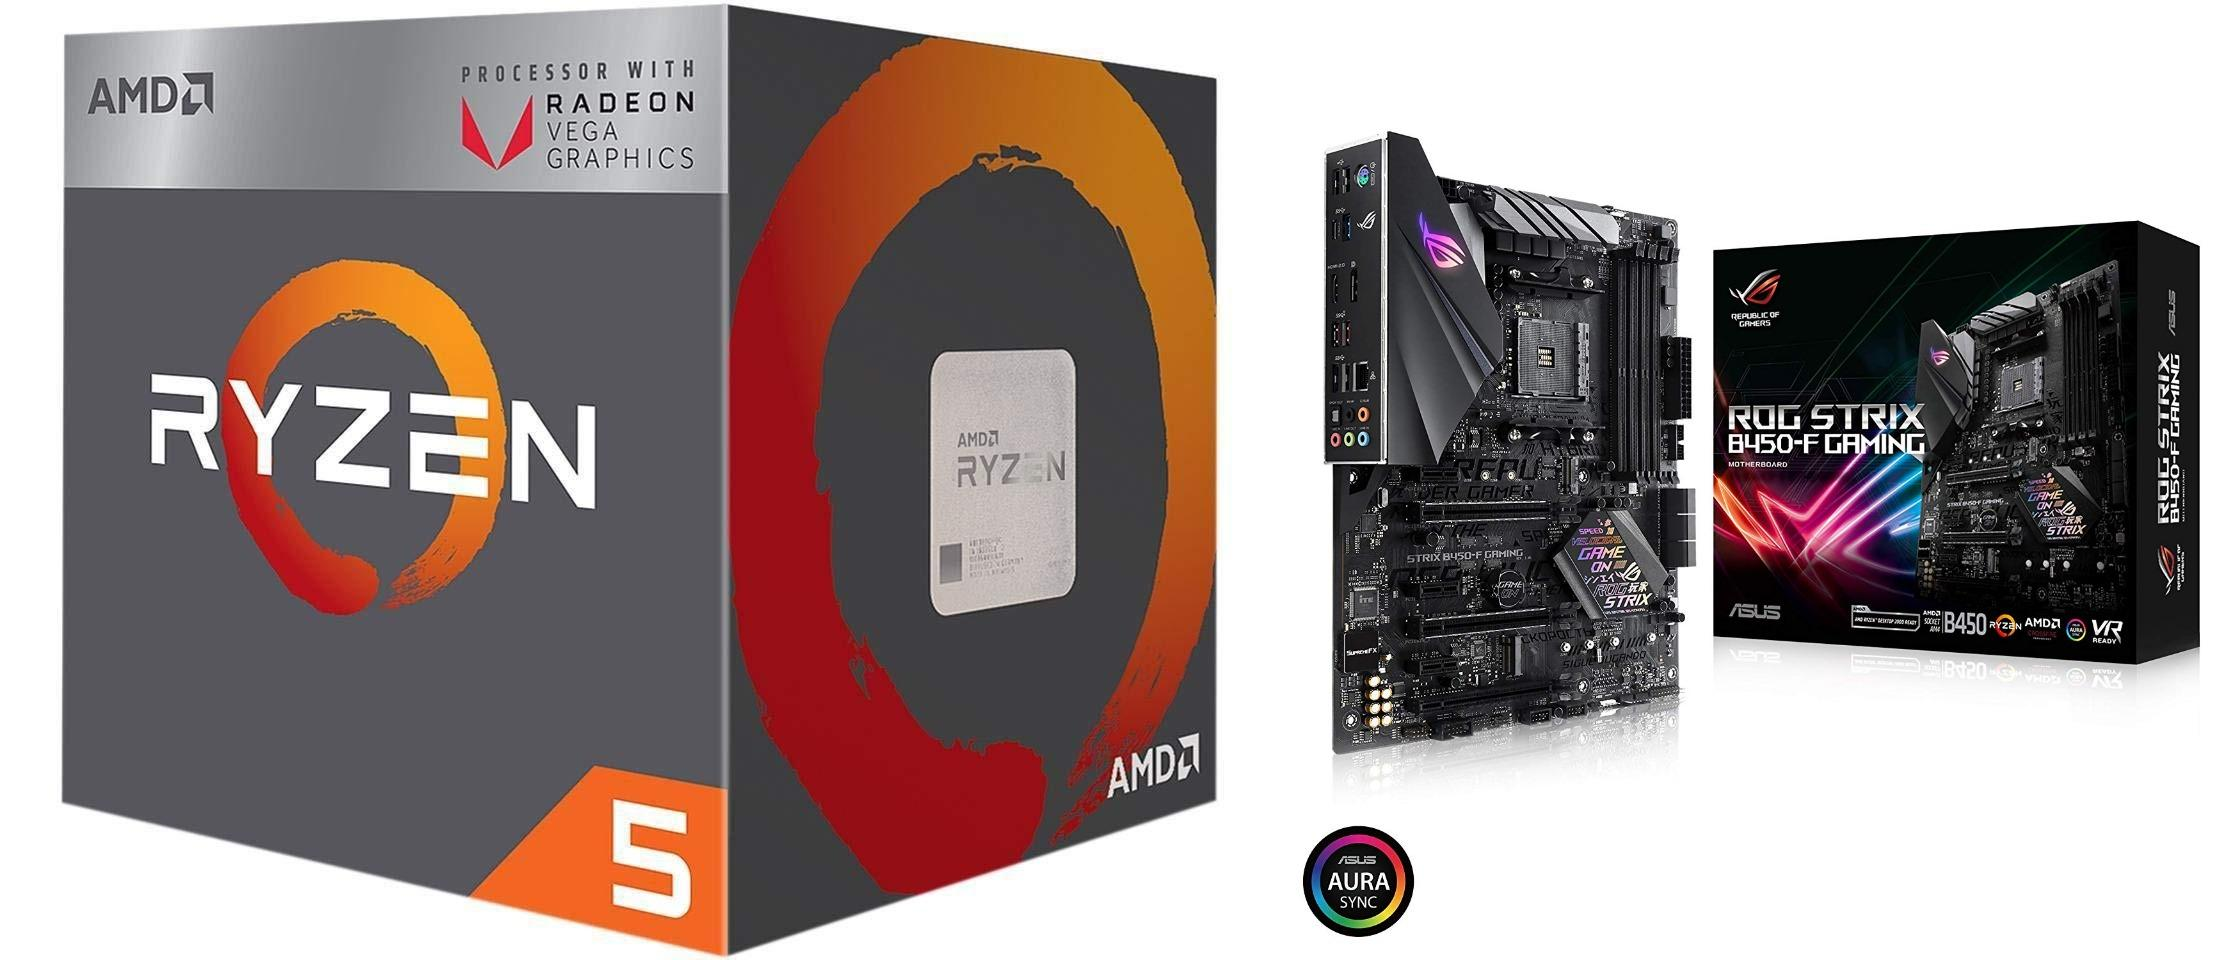 AMD Ryzen 5 2400G Bundle with ASUS ROG Strix B450-F Gaming Motherboard (ATX)